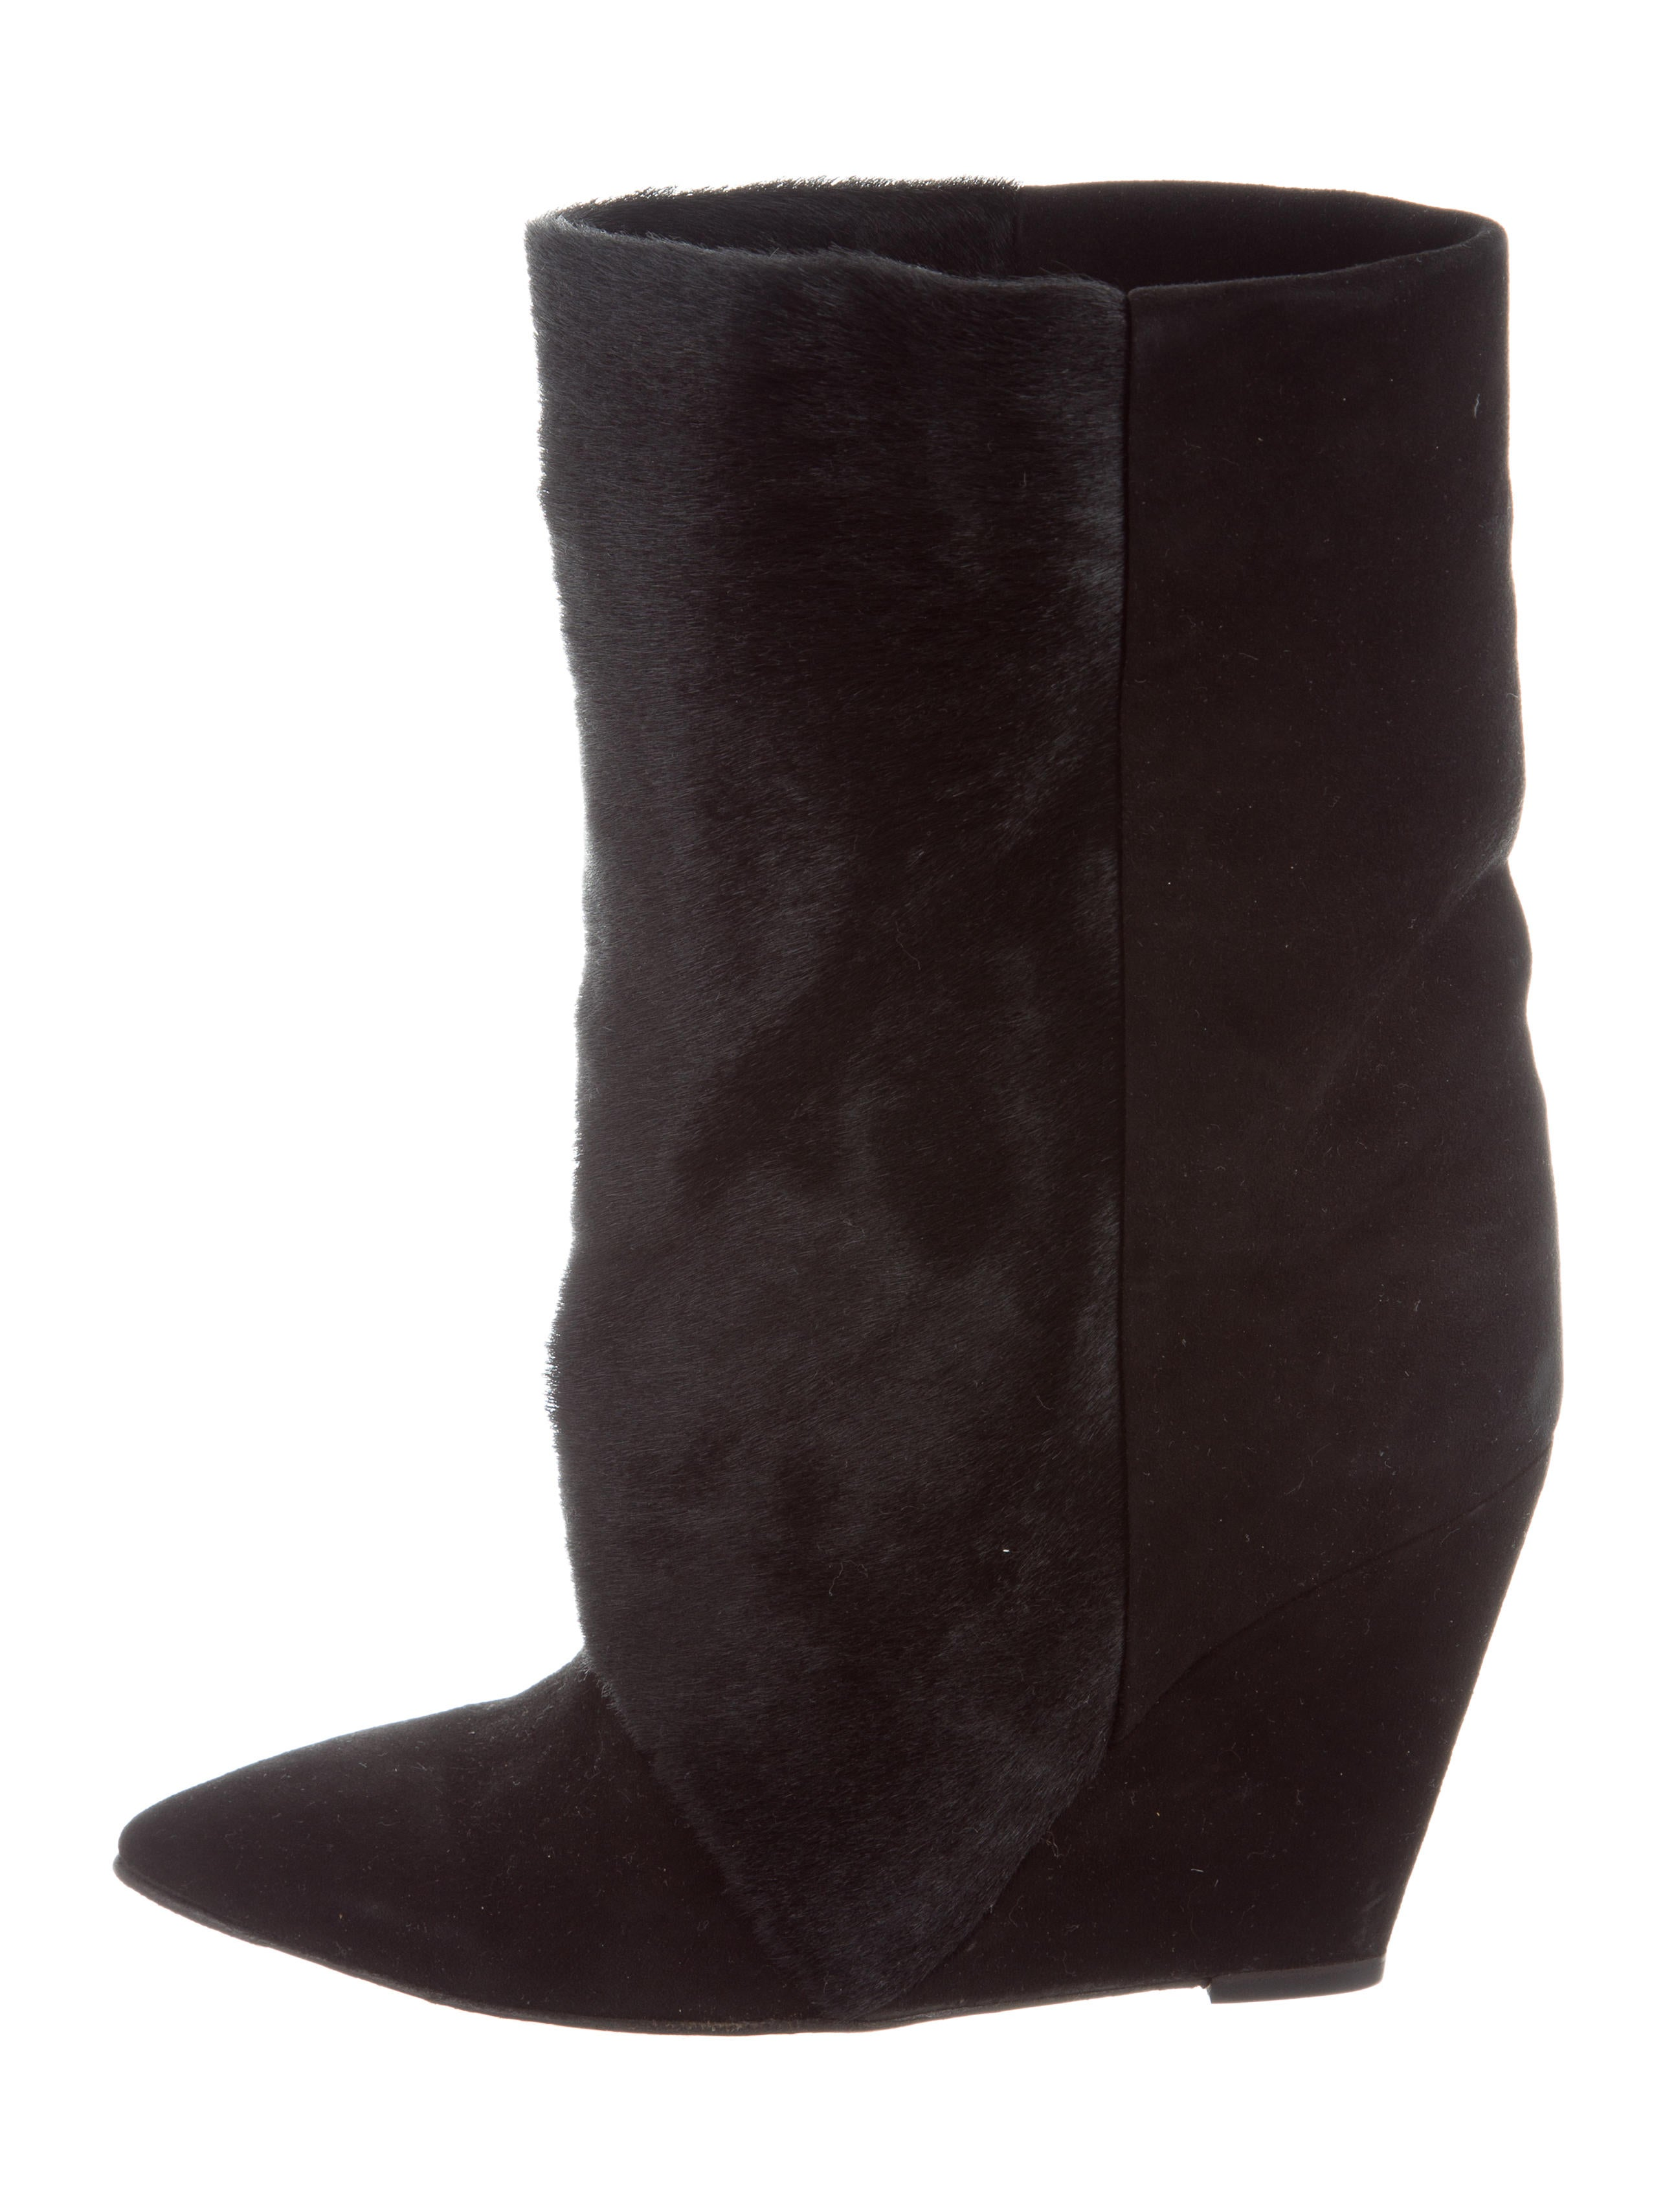 classic cheap online Isabel Marant Ponyhair & Suede Wedge Boots genuine cheap price outlet enjoy TJHkfTm2Zs